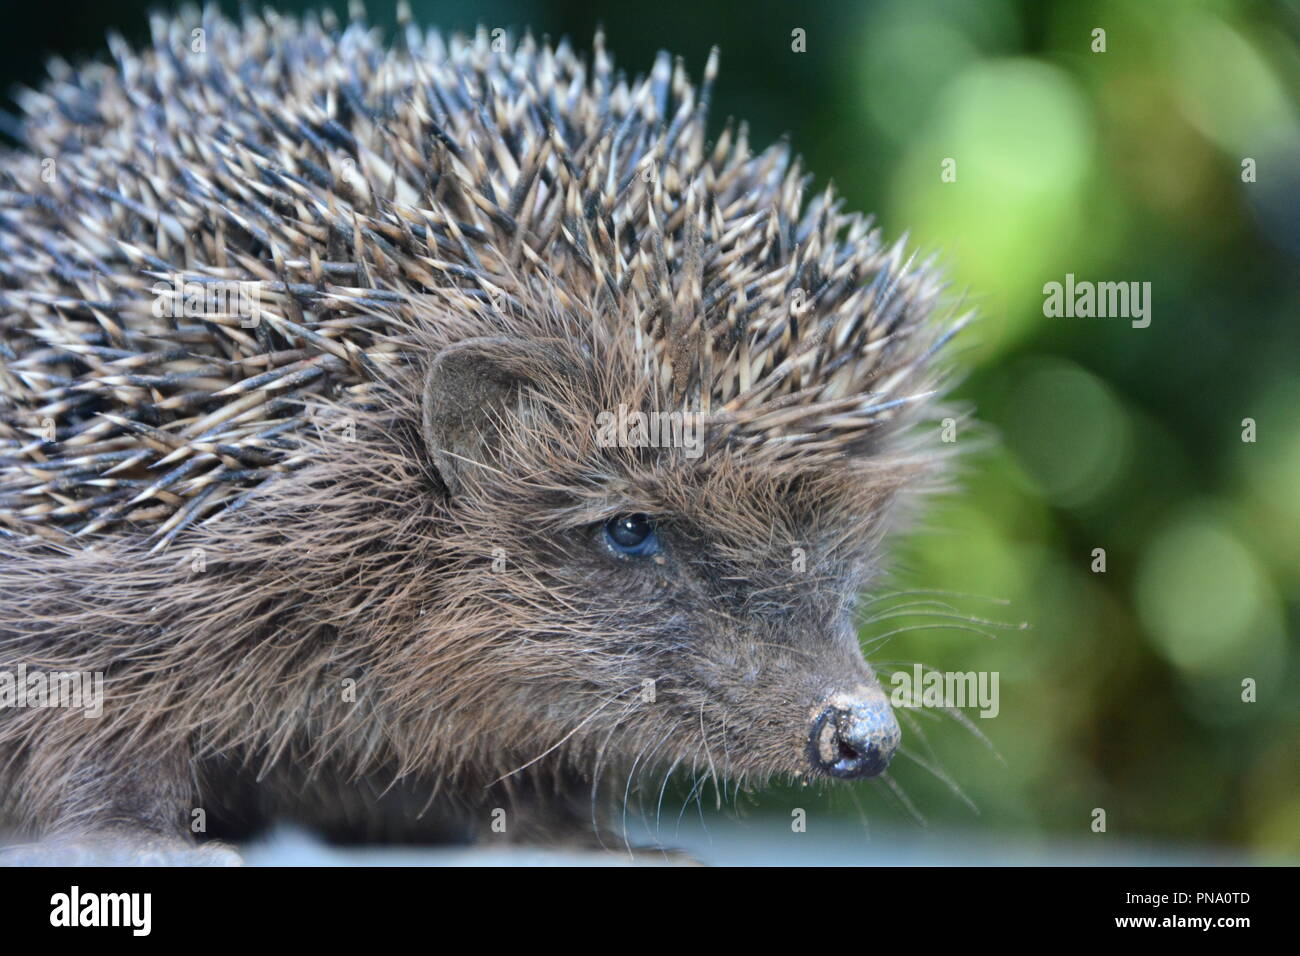 Close up from a hedgehog in front of green nature - Stock Image